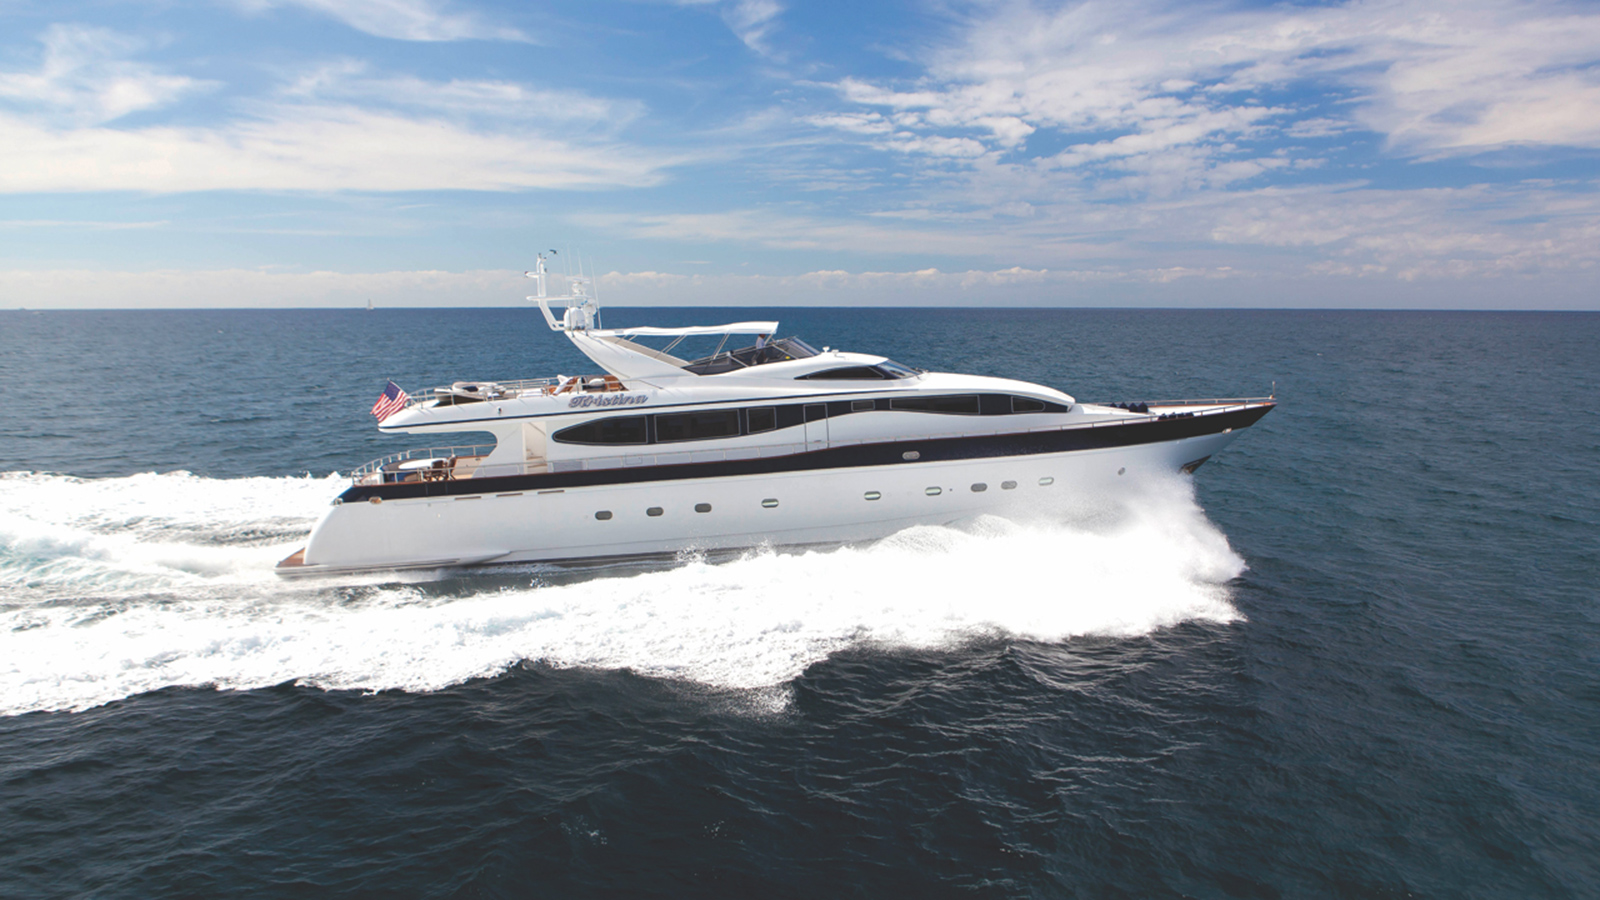 the-viking-motor-yacht-troca-one-is-currently-listed-for-sale